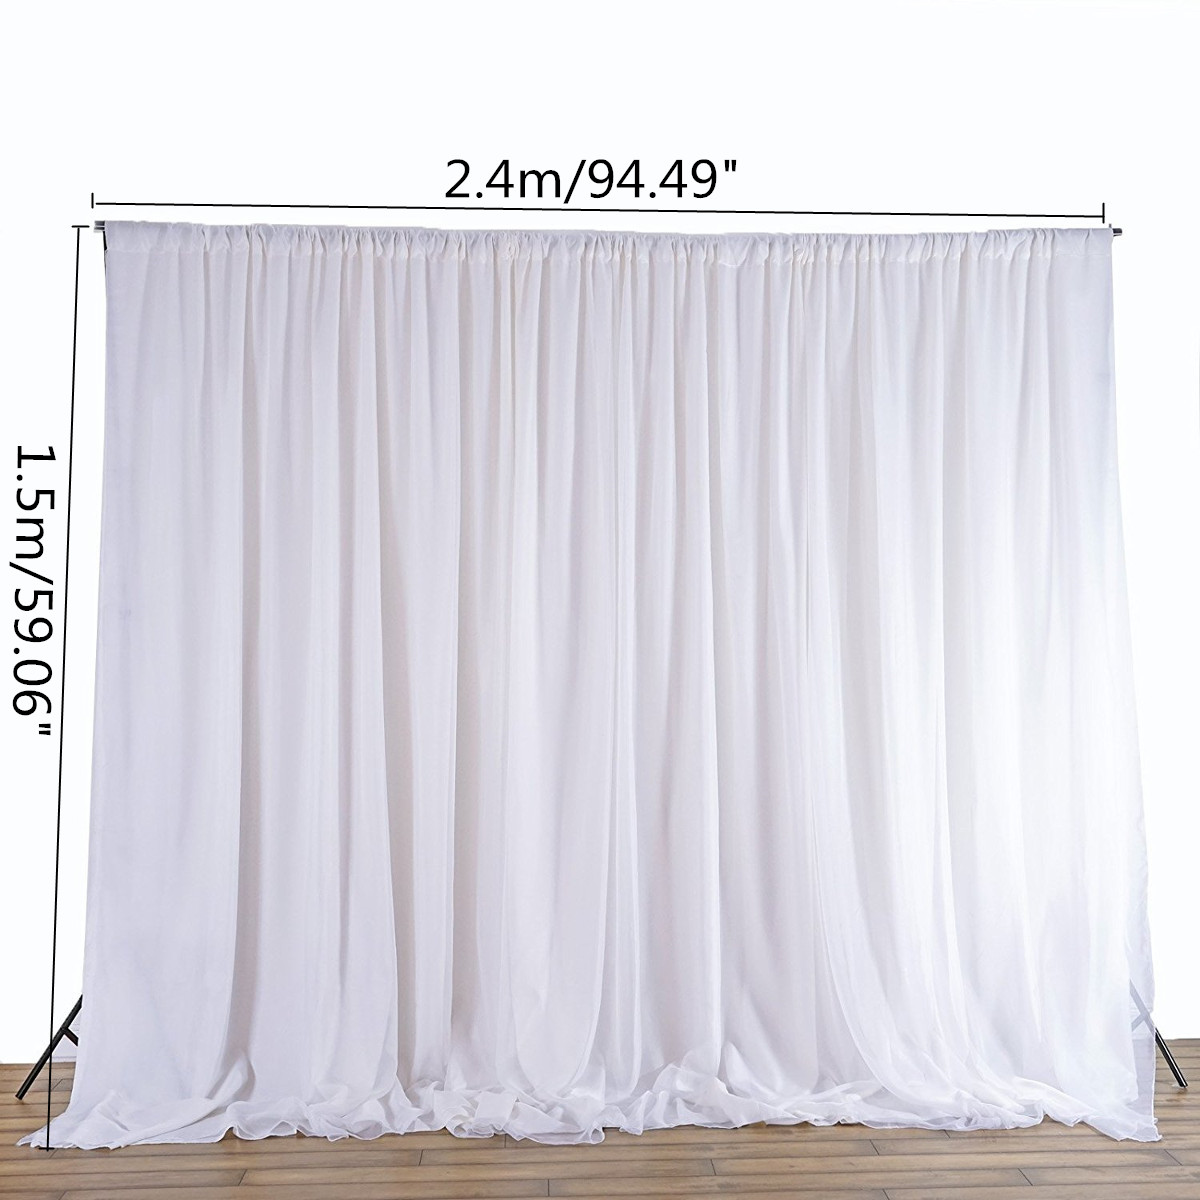 White Sheer Silk Cloth Drapes Panels Hanging Curtains Photo Backdrop  Wedding Party Events DIY Decoration Textiles